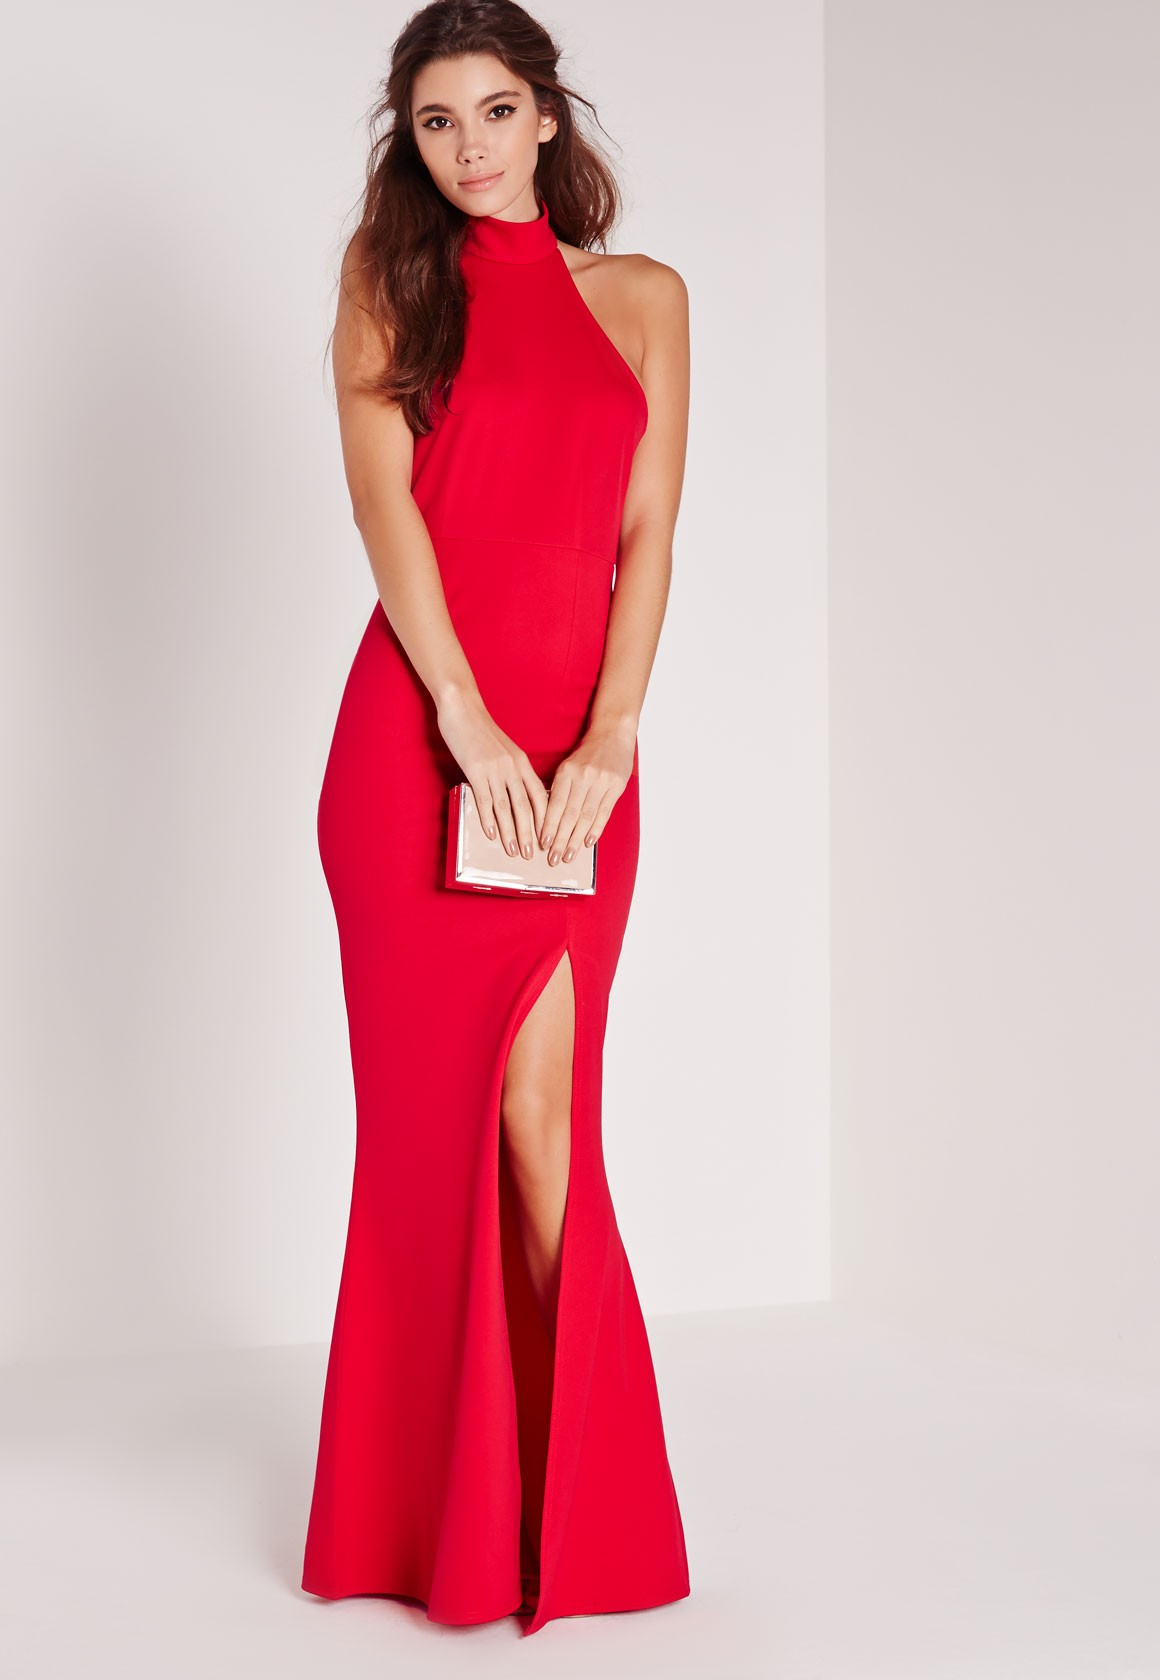 High neck maxi dress in red Image from Missguided